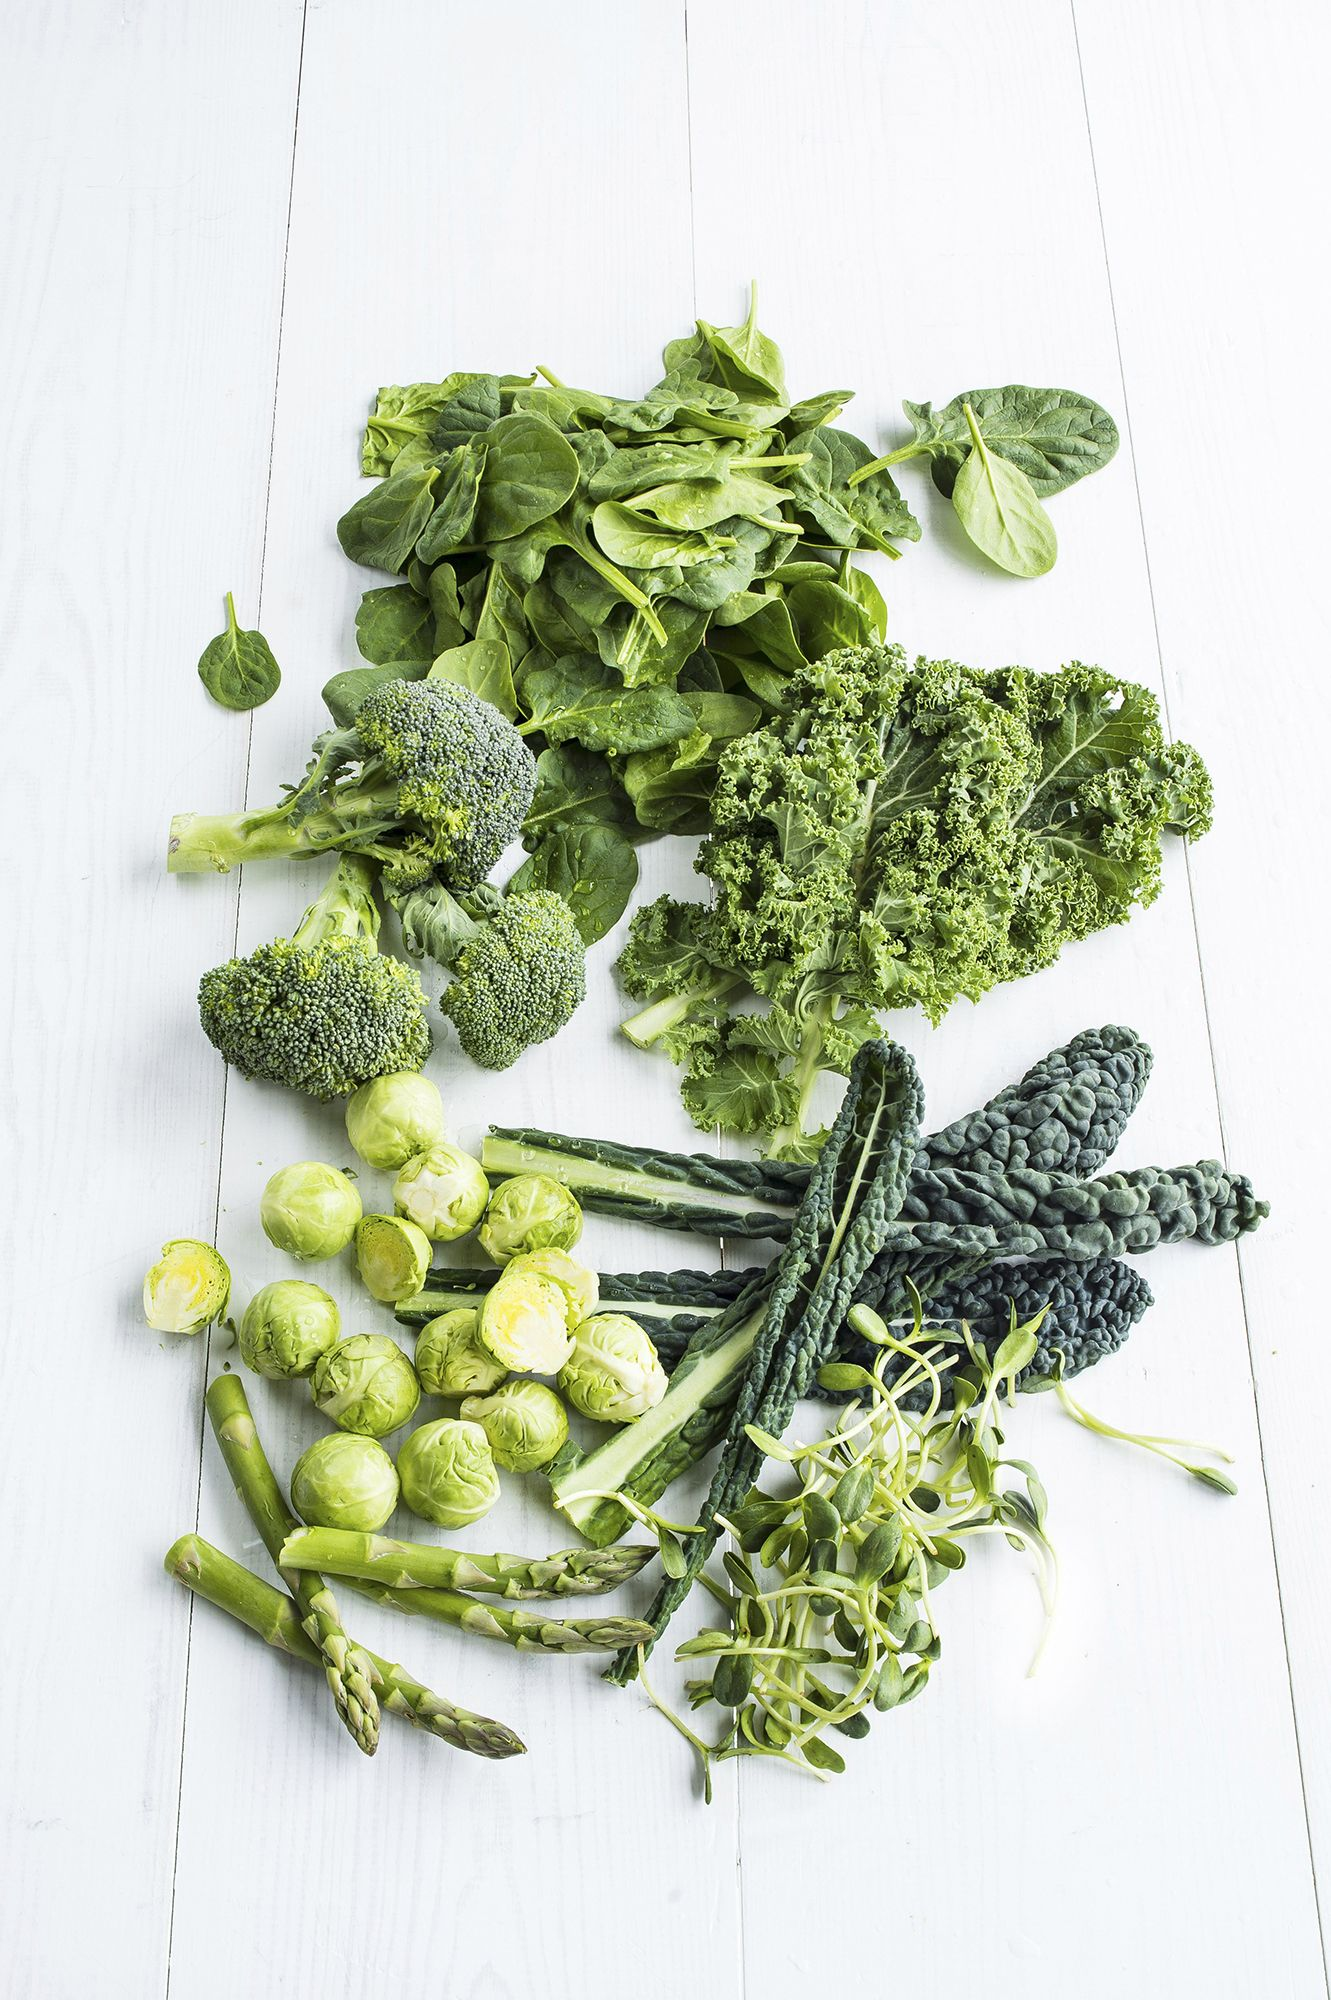 Broccoli - the beneficial properties of royal cabbage 7